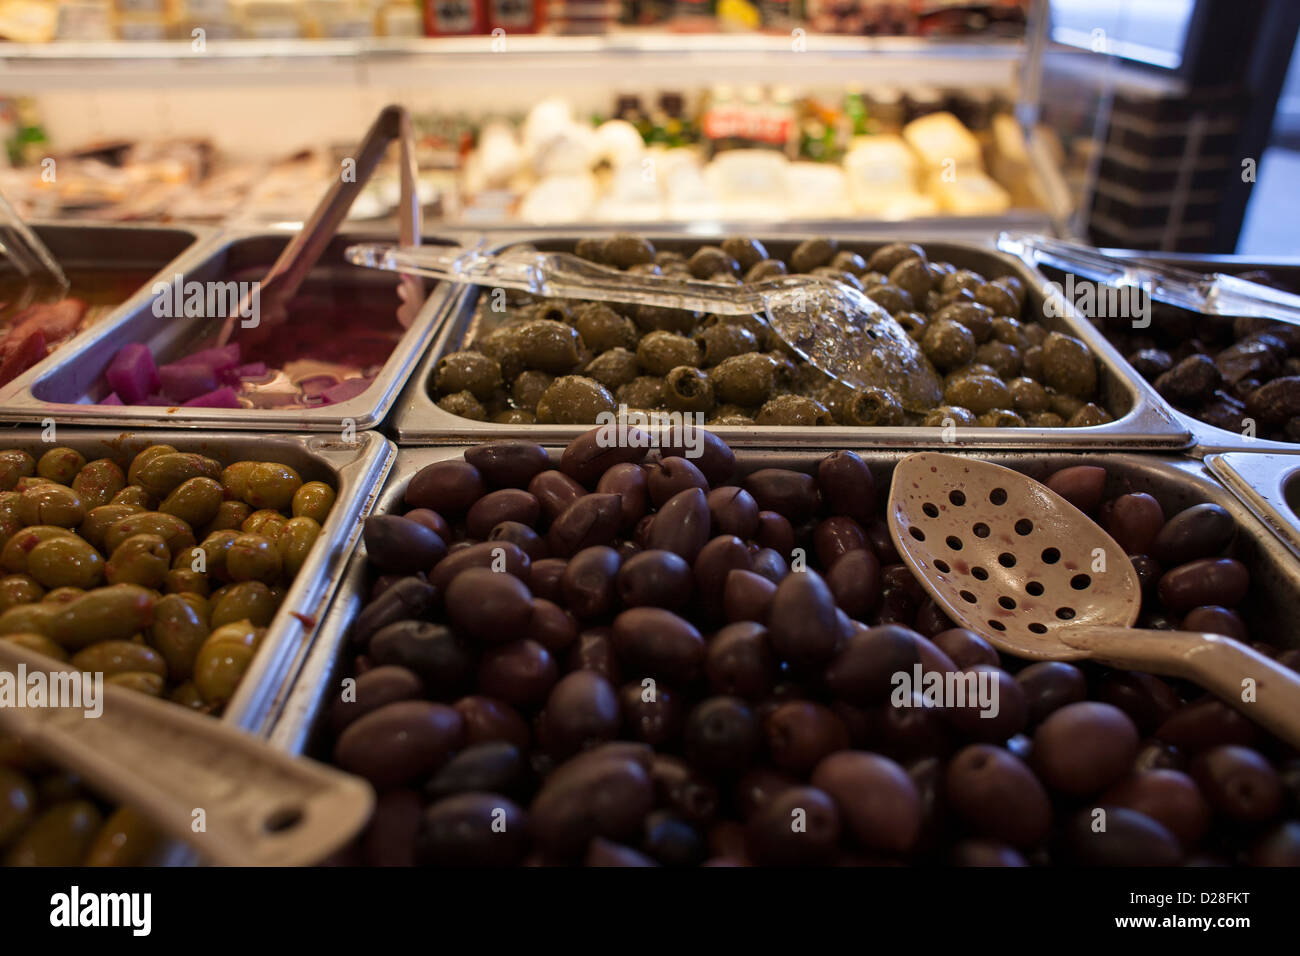 Refrigerated Display Case Stock Photos & Refrigerated Display Case ...